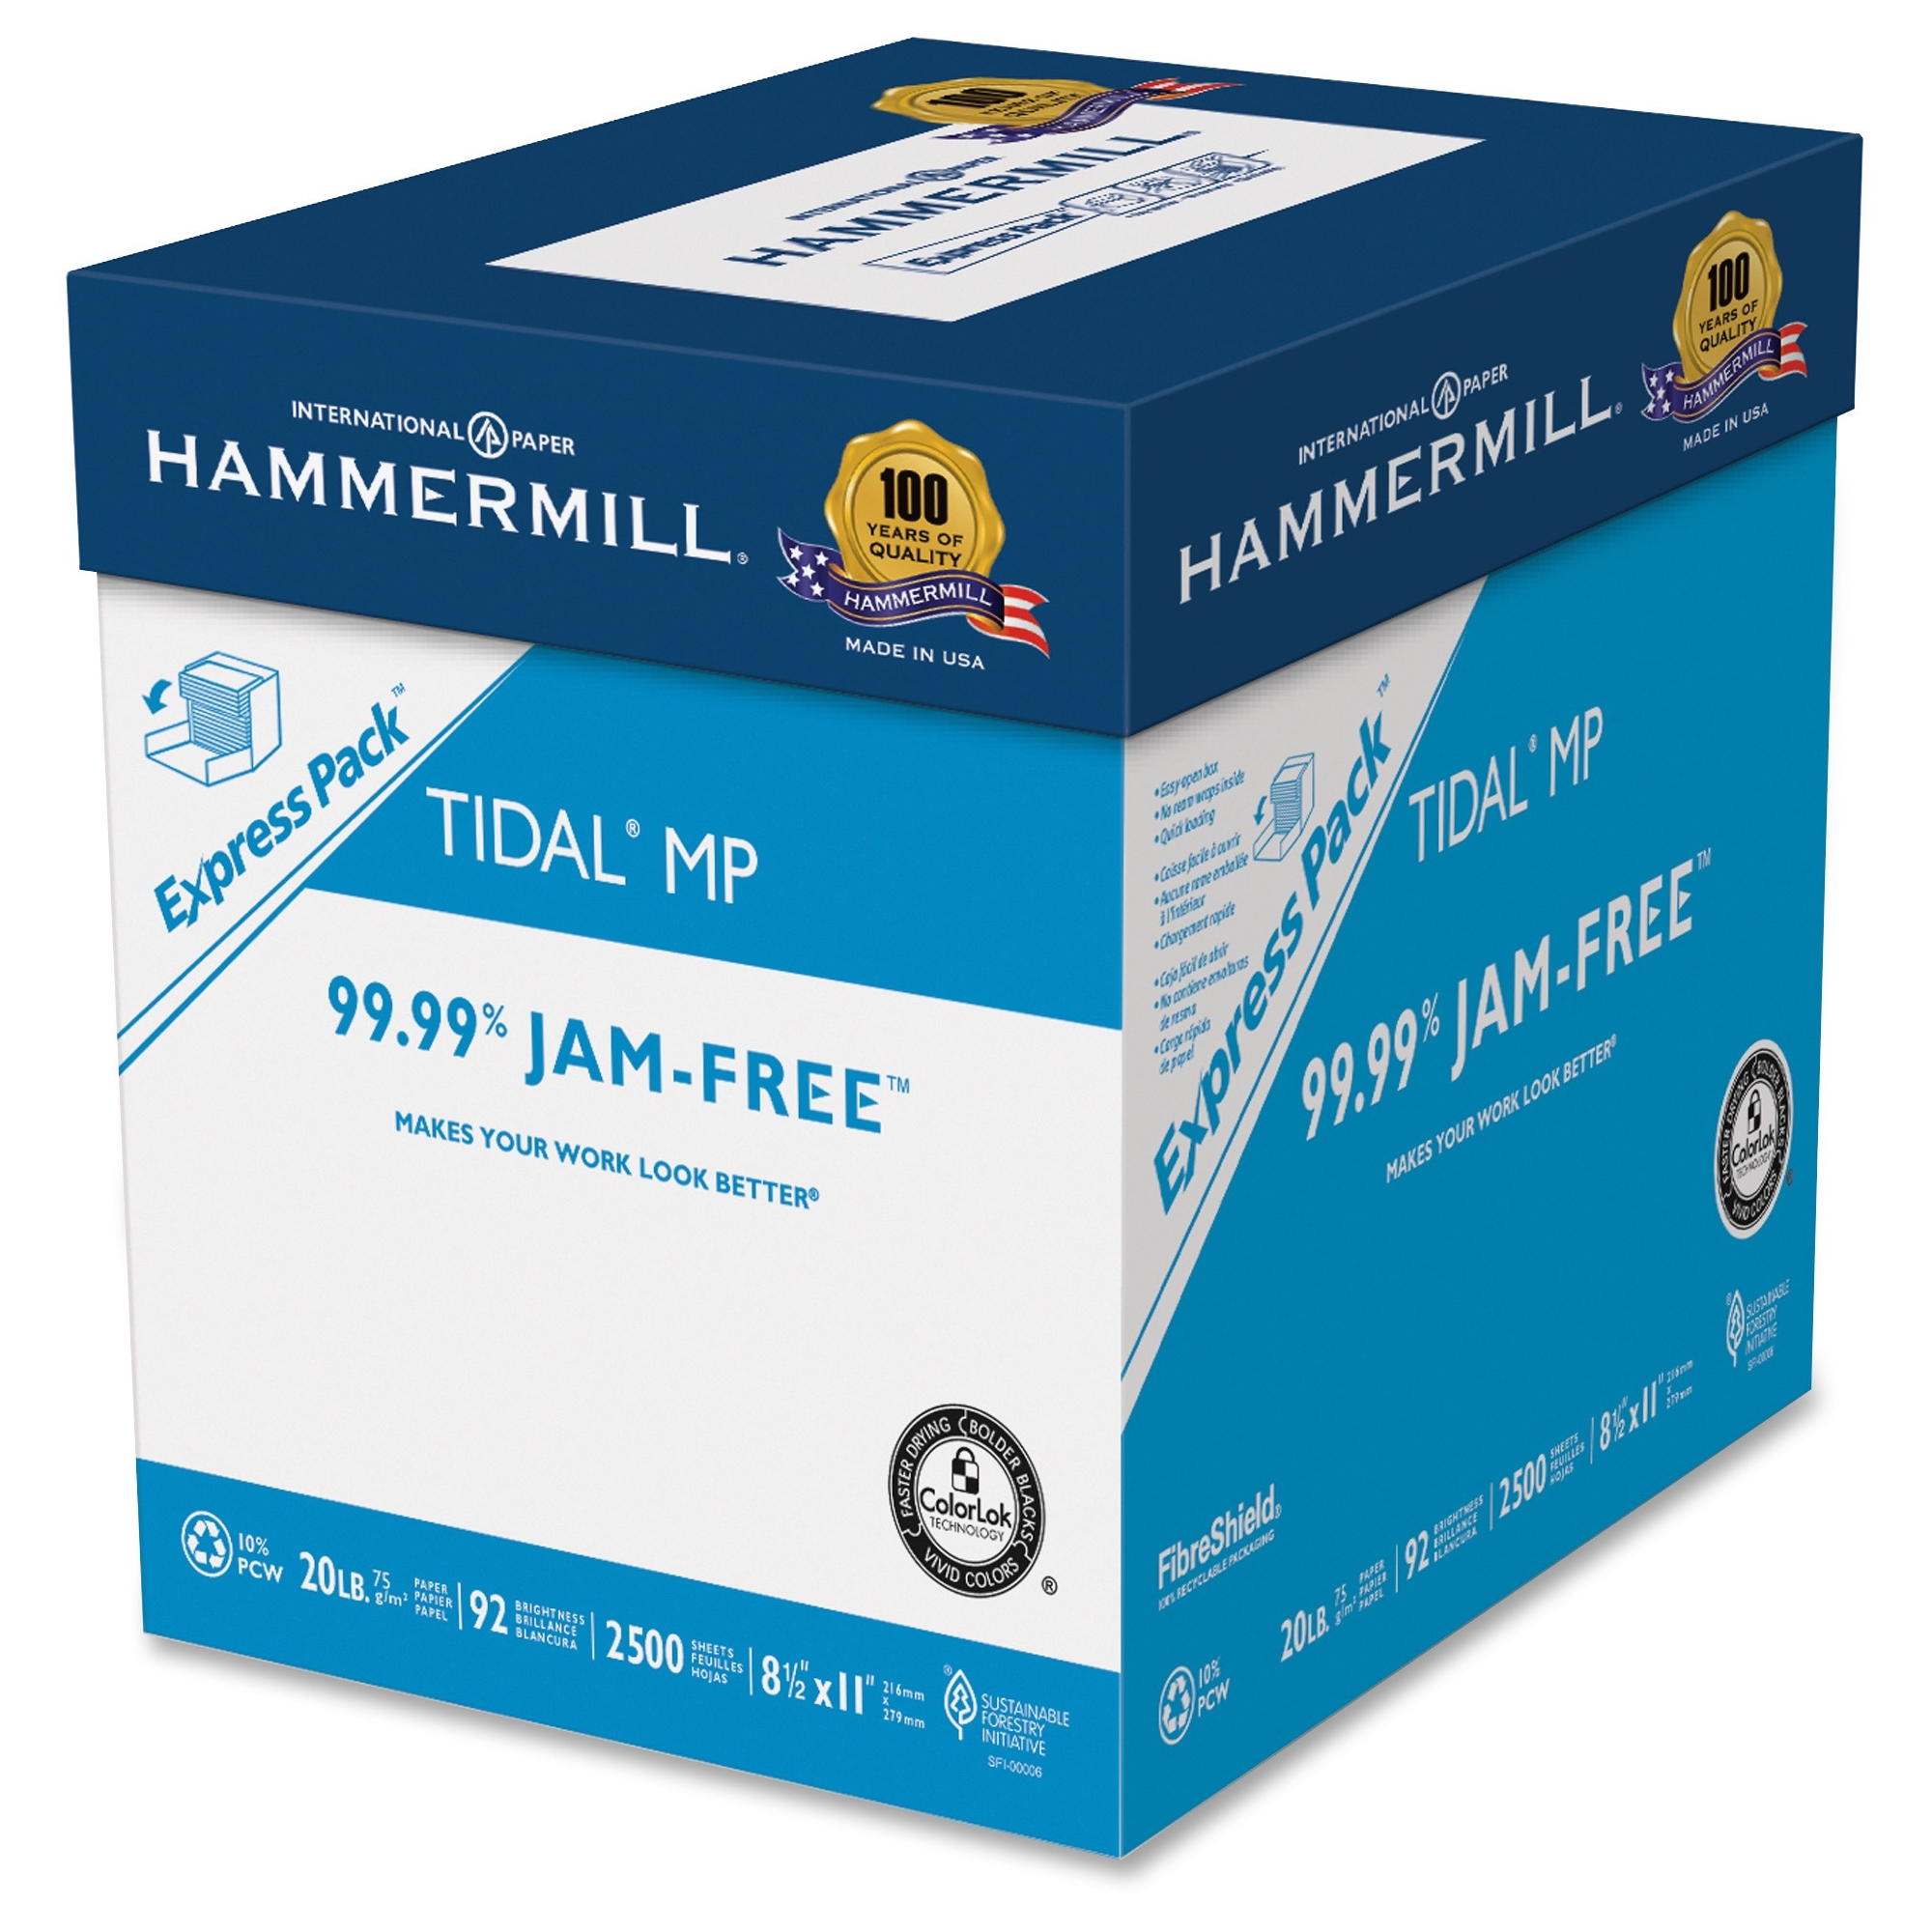 Hammermill 163120 Tidal MP Multipurpose Paper Express Pack